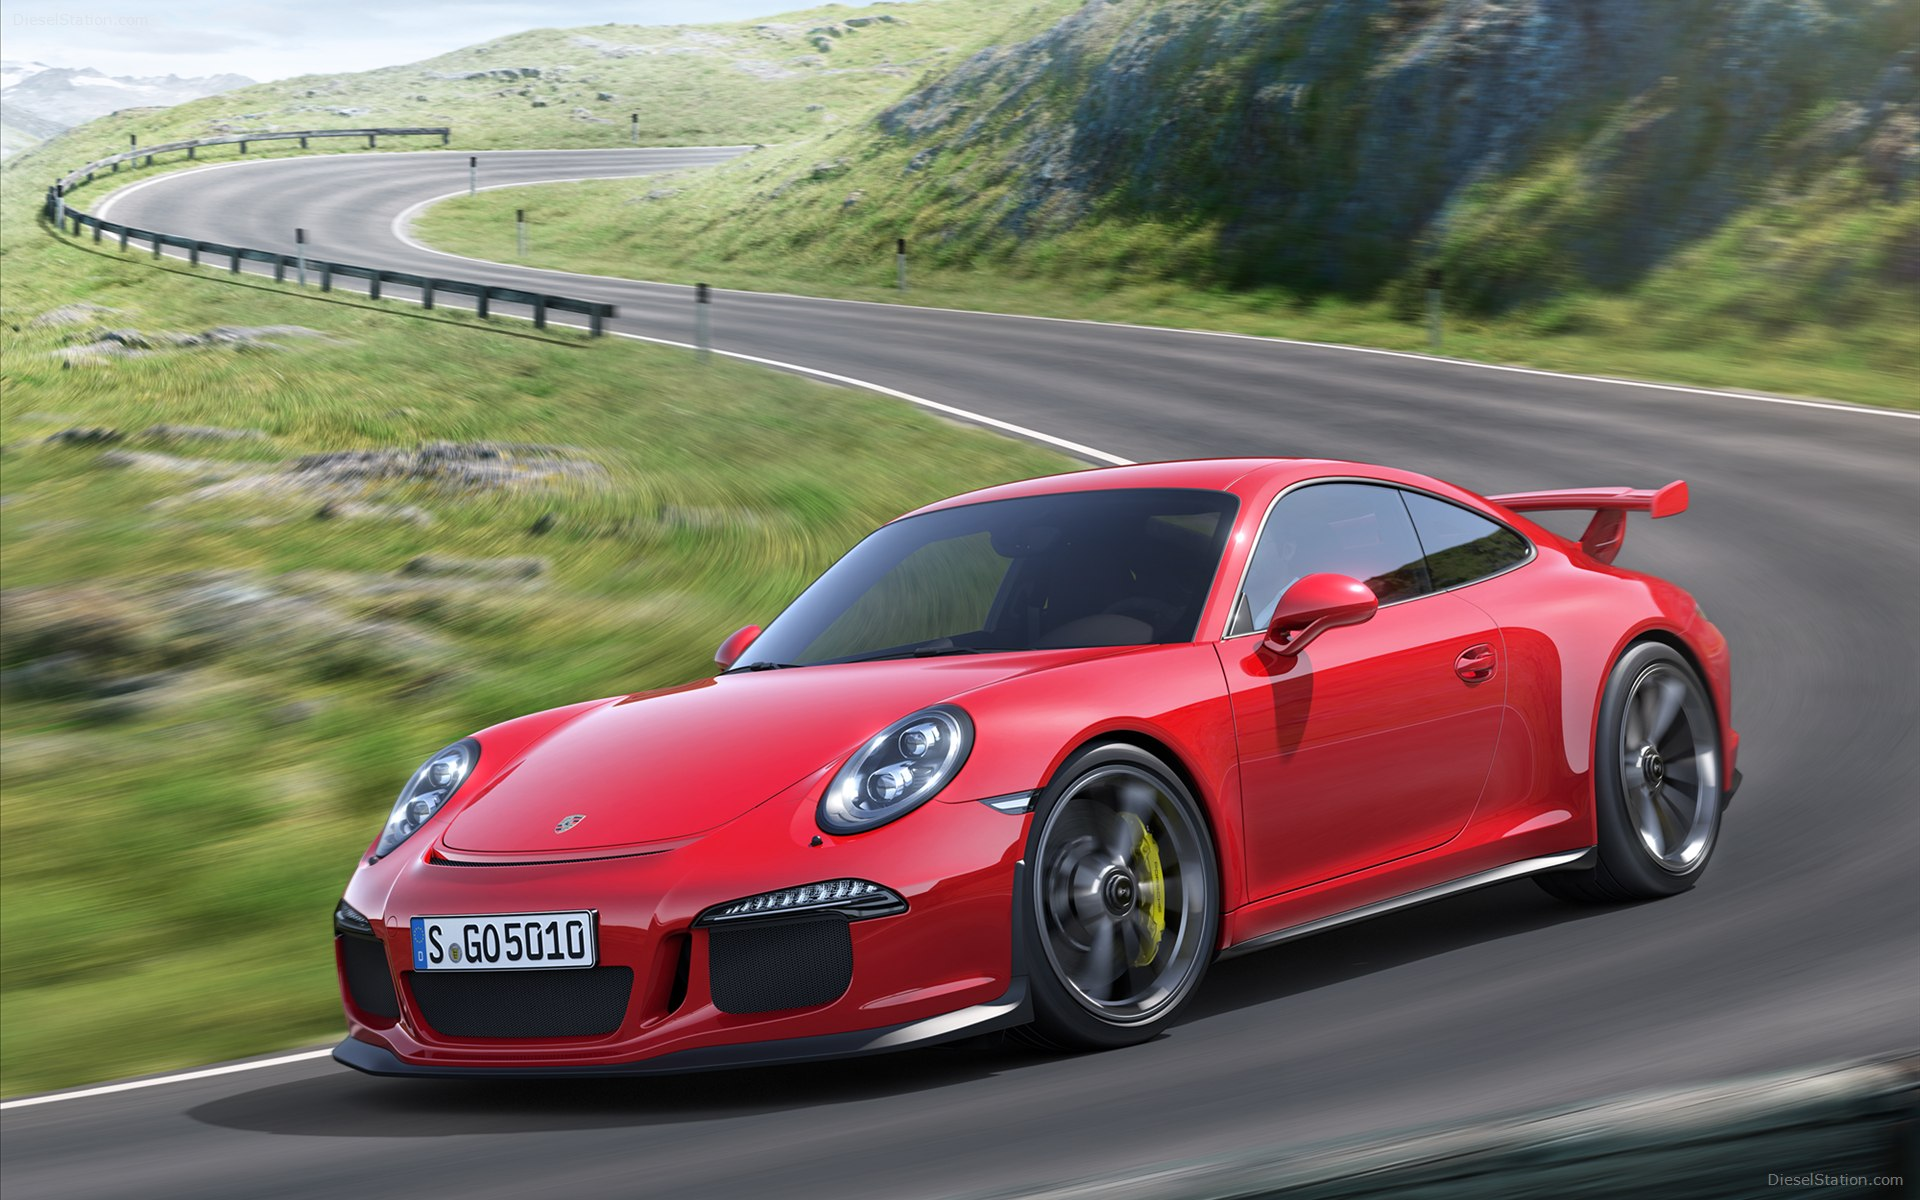 home porsche porsche 911 gt3 2014 - Porsche 911 Wallpaper Widescreen